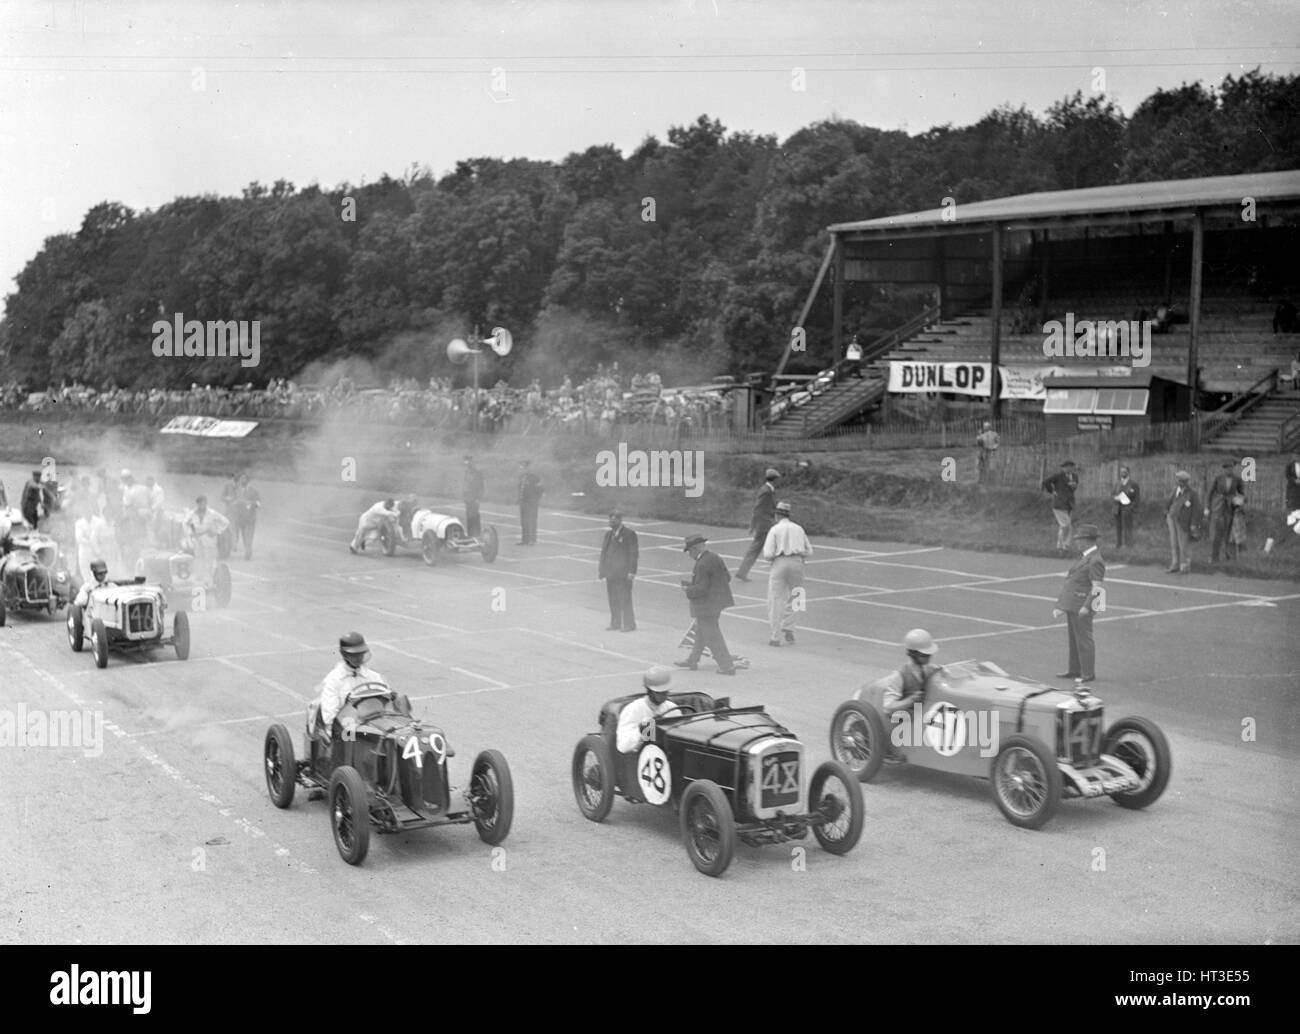 Motor race at Donington Park, Leicestershire, 1936. Artist: Bill Brunell. - Stock Image